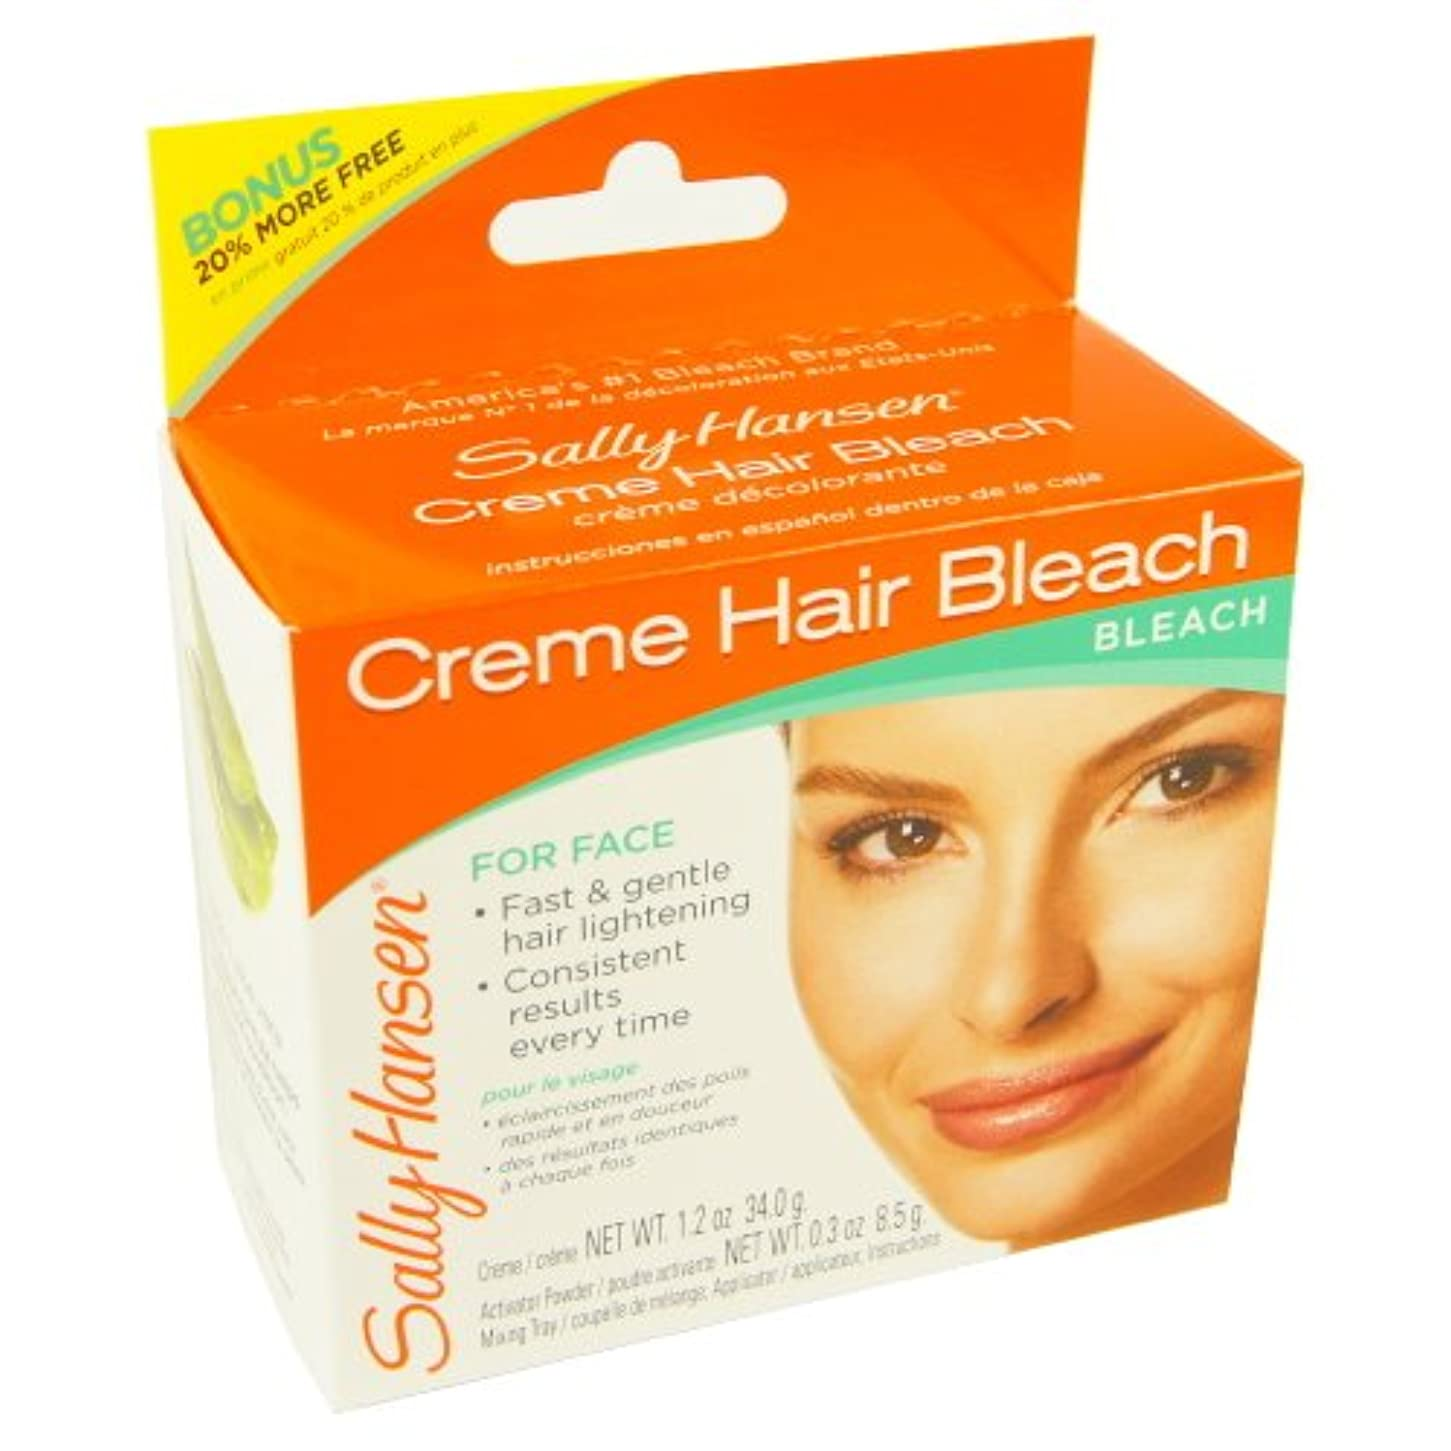 会話型意見従者(6 Pack) SALLY HANSEN Creme Hair Bleach for Face - SH2000 (並行輸入品)